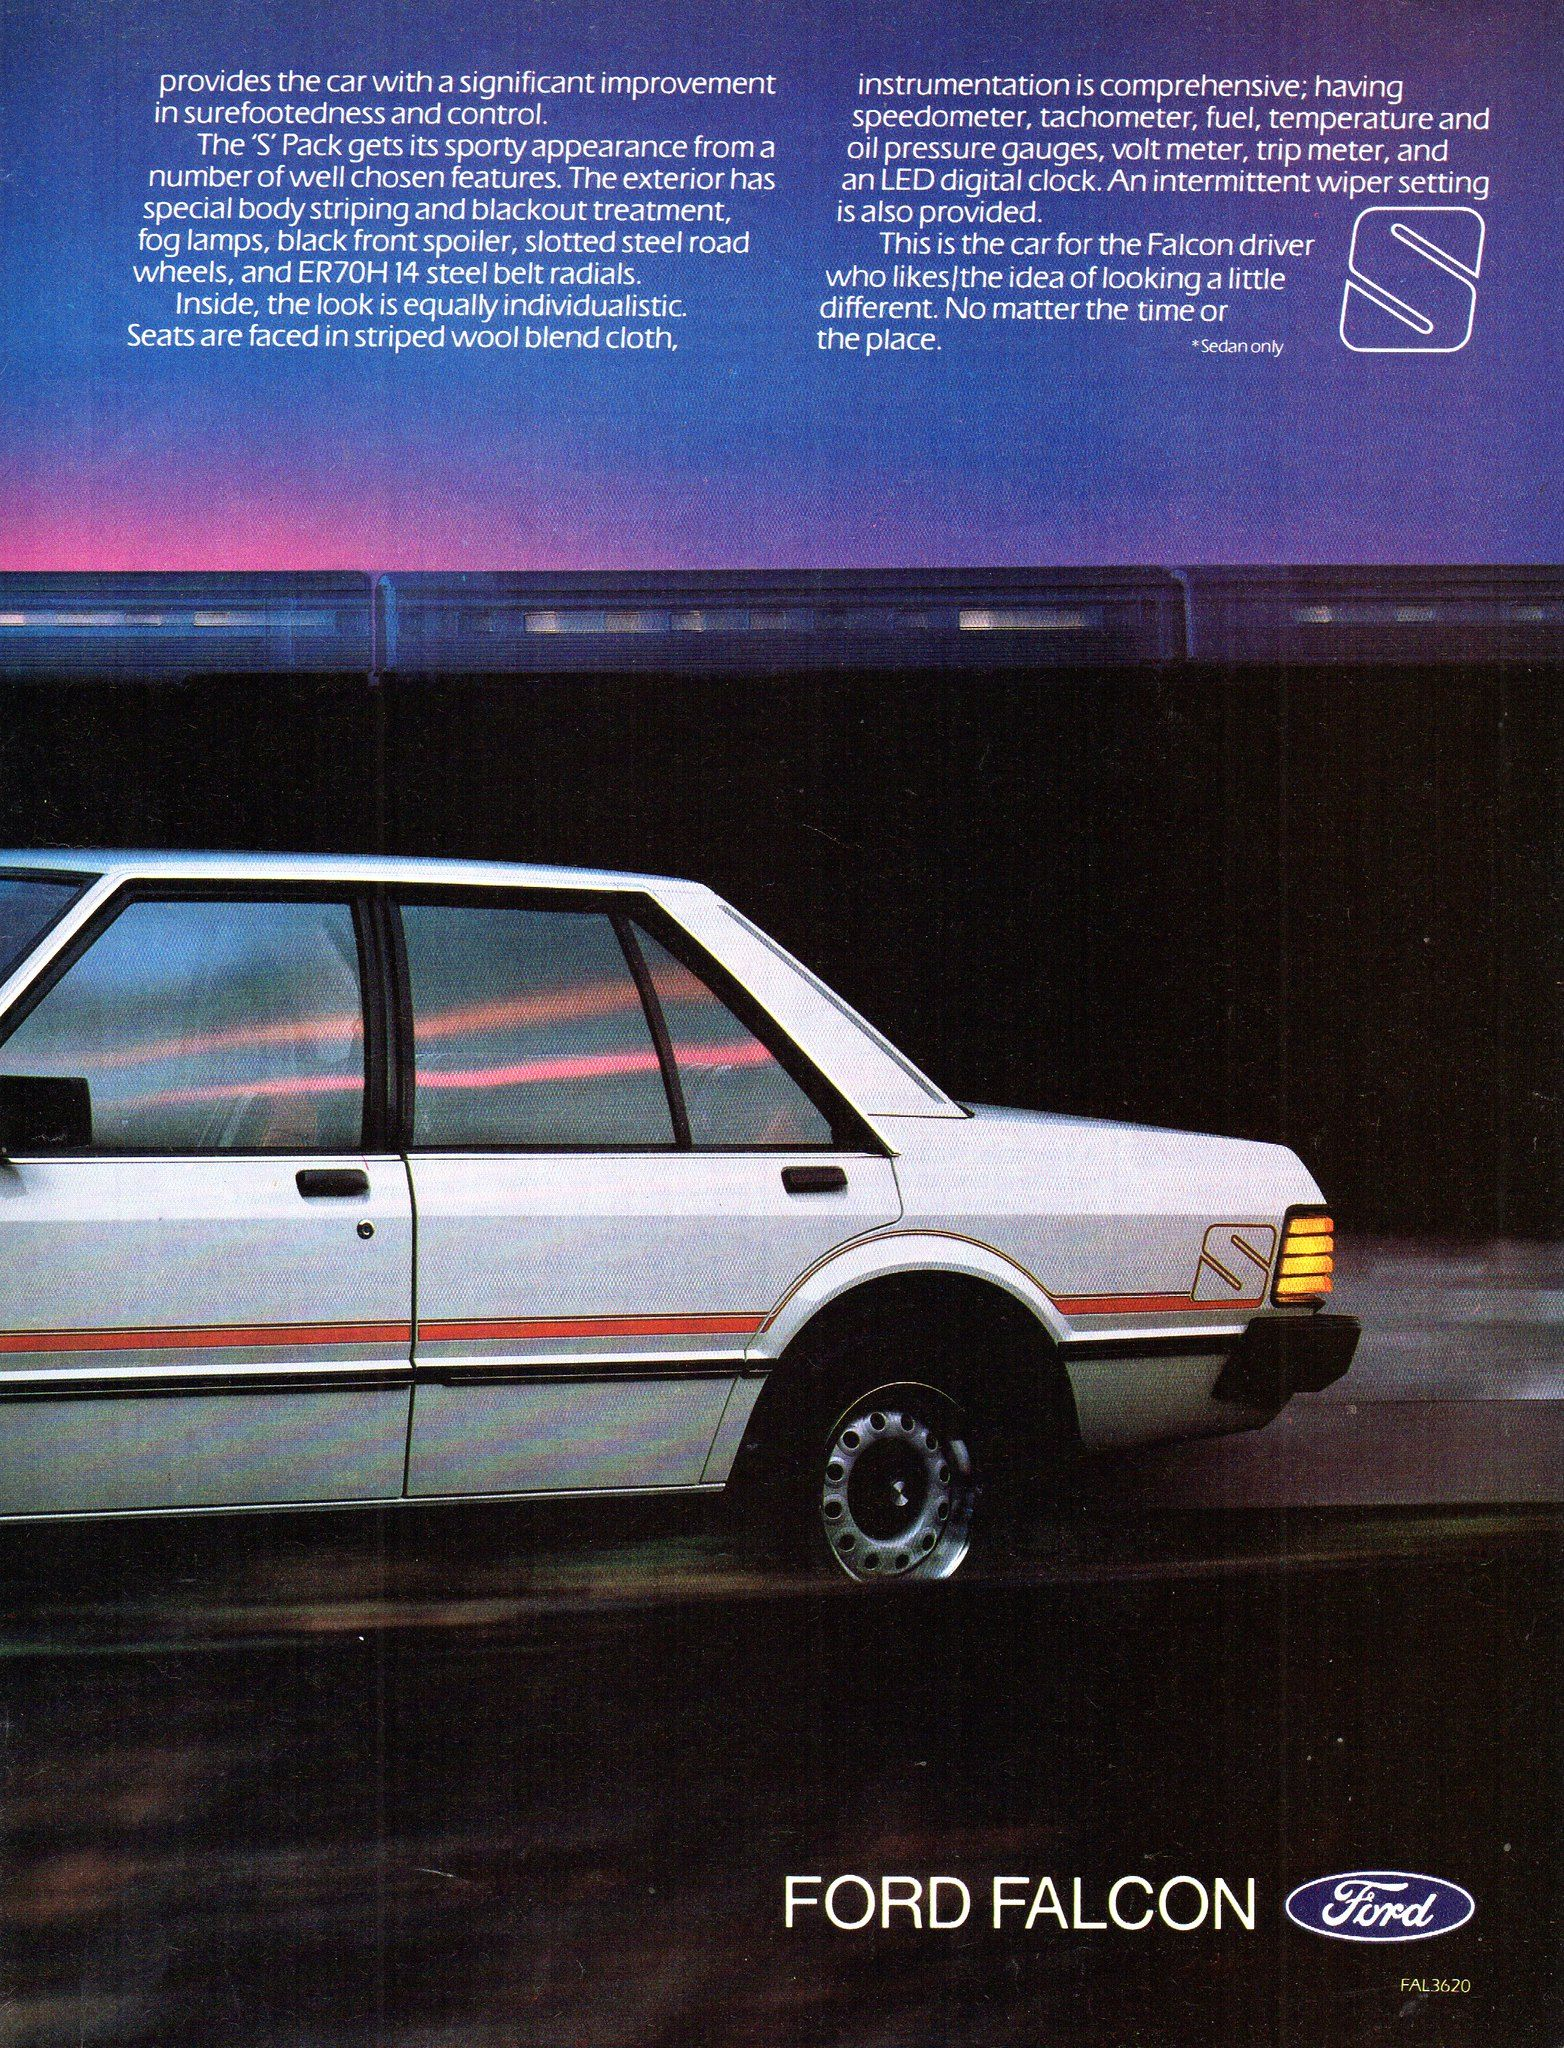 1982 Xe Ford Falcon S Pack Sedan Page 2 Aussie Original Magazine